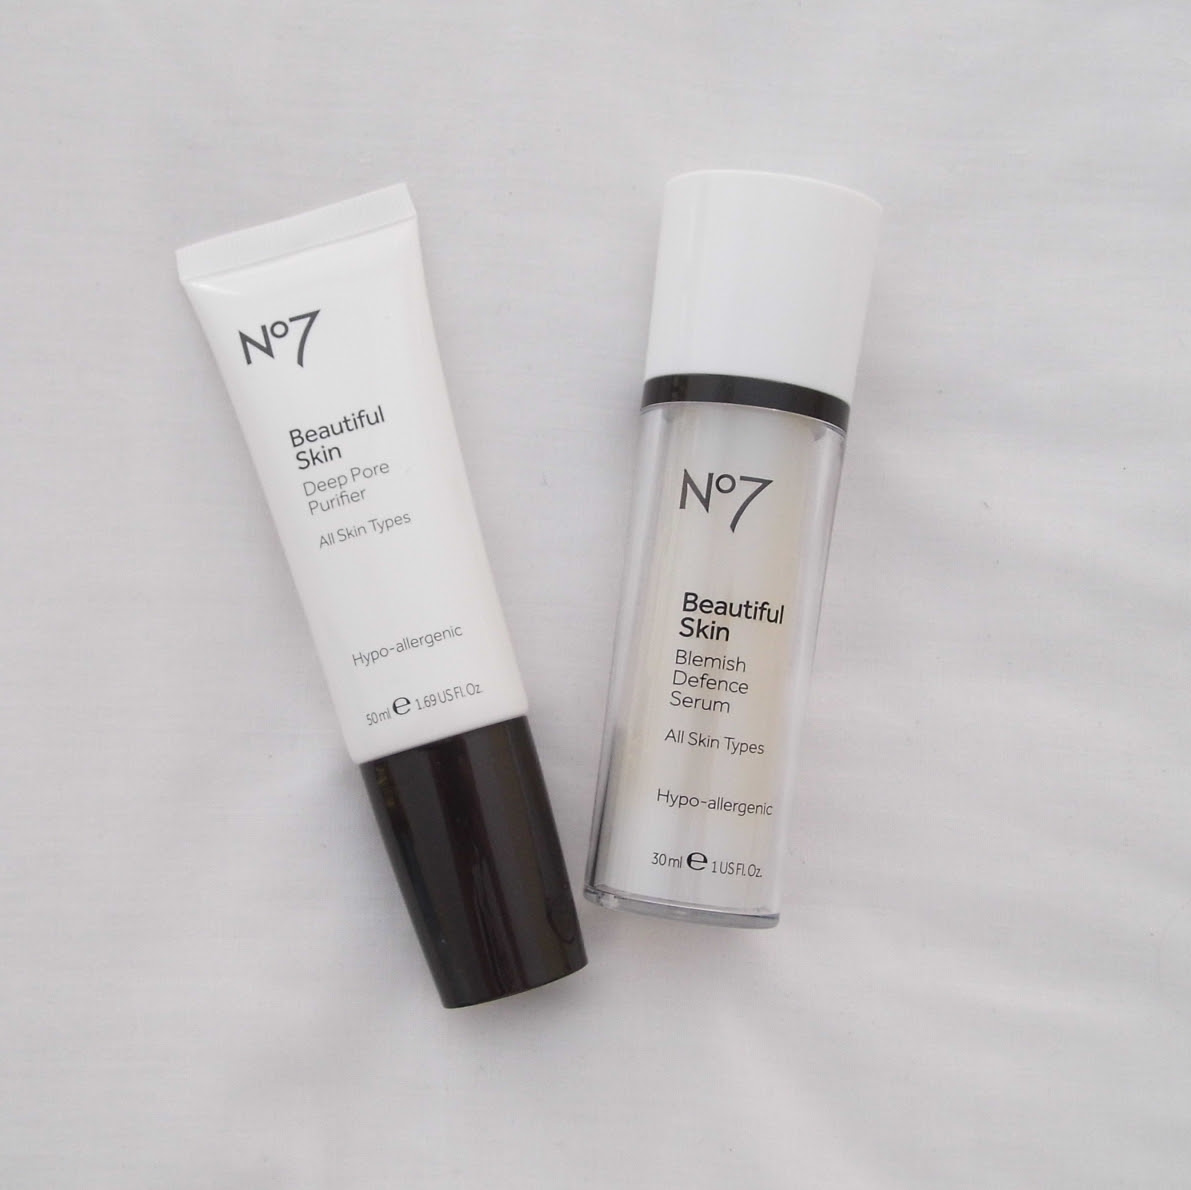 Boots No7 Beautiful Skin Blemish Defence